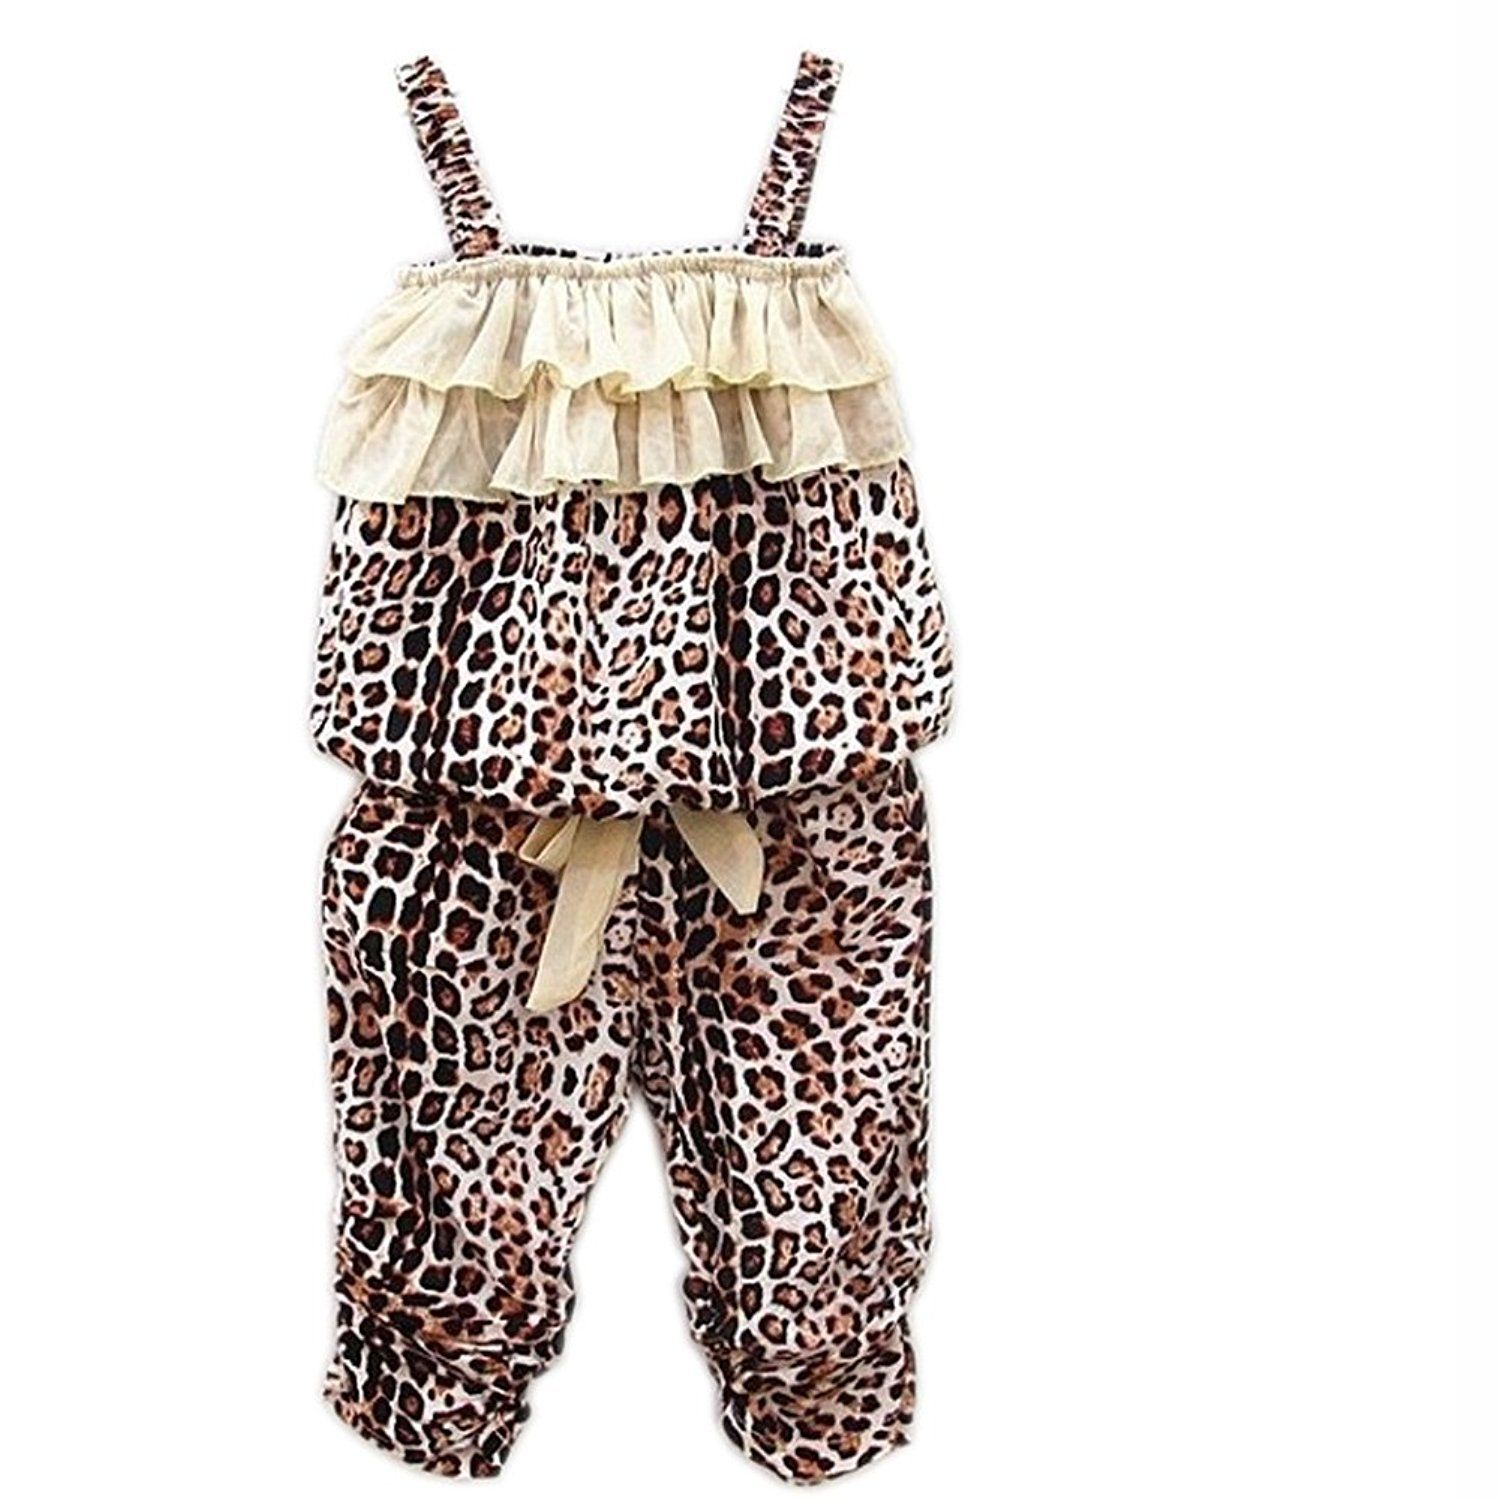 Amazon.com: Hot Children's Baby Girls Summer Clothes Leopard Vest+pants Sets Outfits 2pcs: Clothing  https://www.amazon.com/gp/product/B00T4C0XMA/ref=as_li_qf_sp_asin_il_tl?ie=UTF8&tag=rockaclothsto_toys-20&camp=1789&creative=9325&linkCode=as2&creativeASIN=B00T4C0XMA&linkId=9b4096b01e21635a6246485336a36129